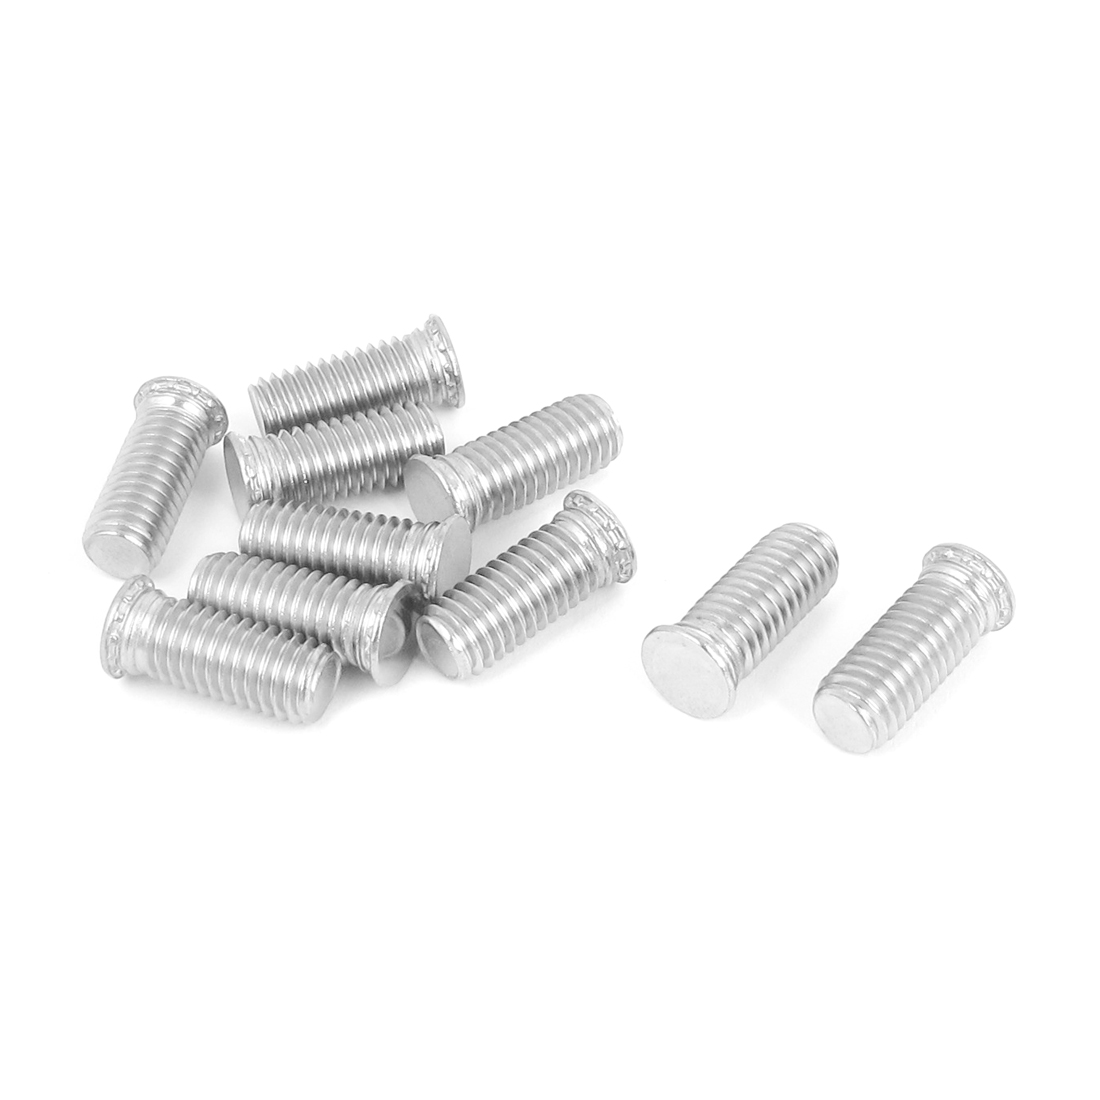 M8x20mm Flush Head Stainless Steel Self Clinching Threaded Studs Fastener 10pcs